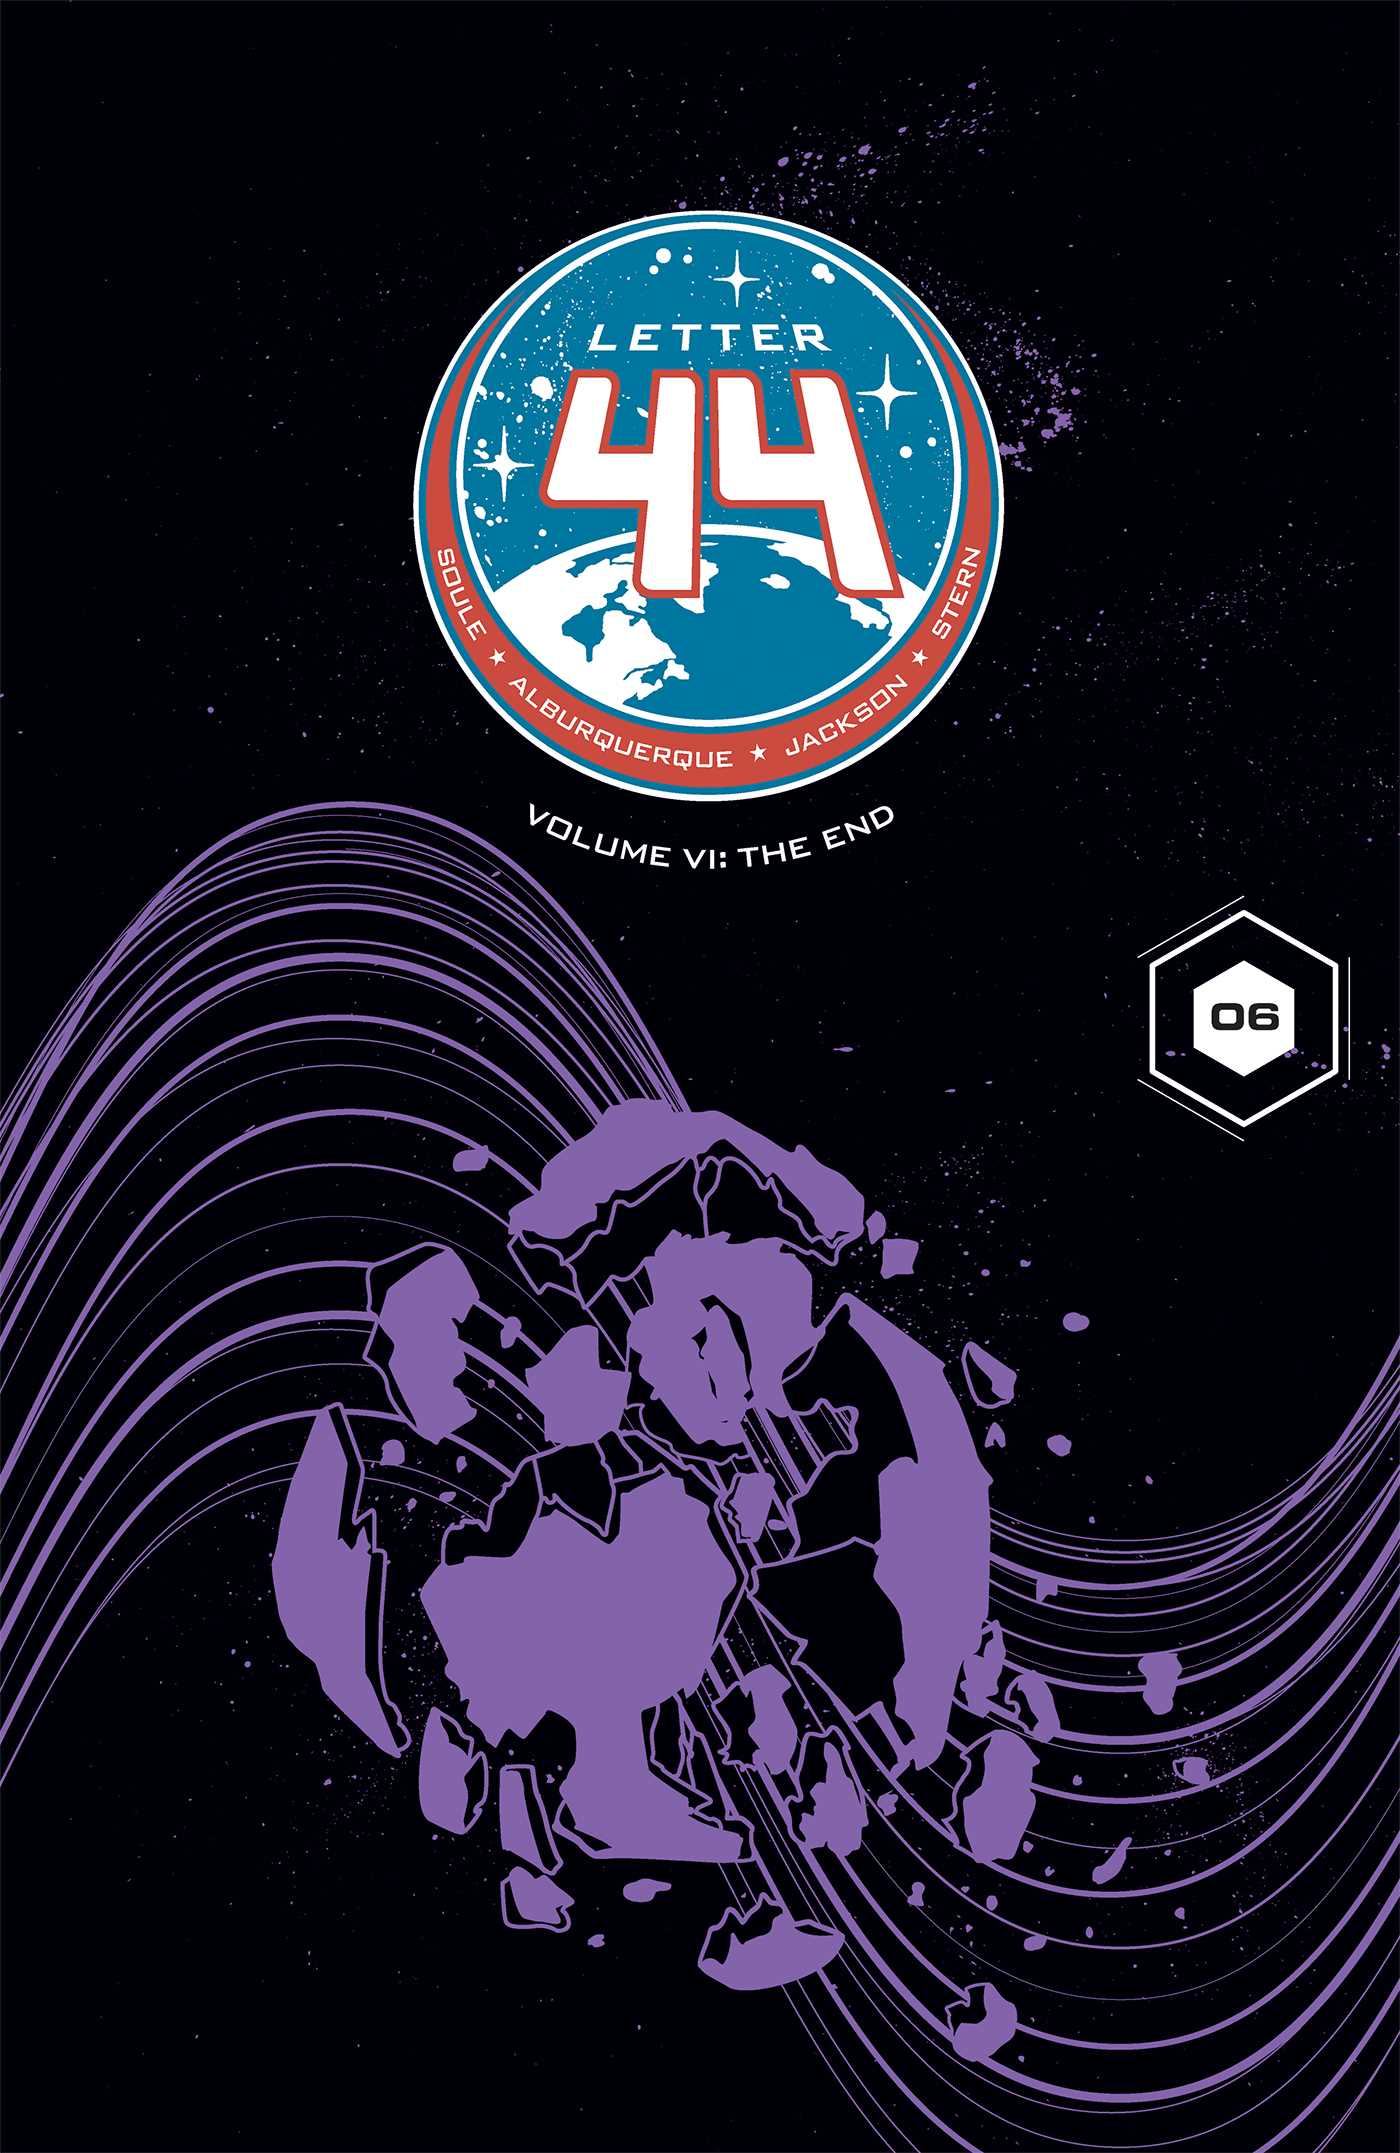 Letter 44 Vol. 6: The End